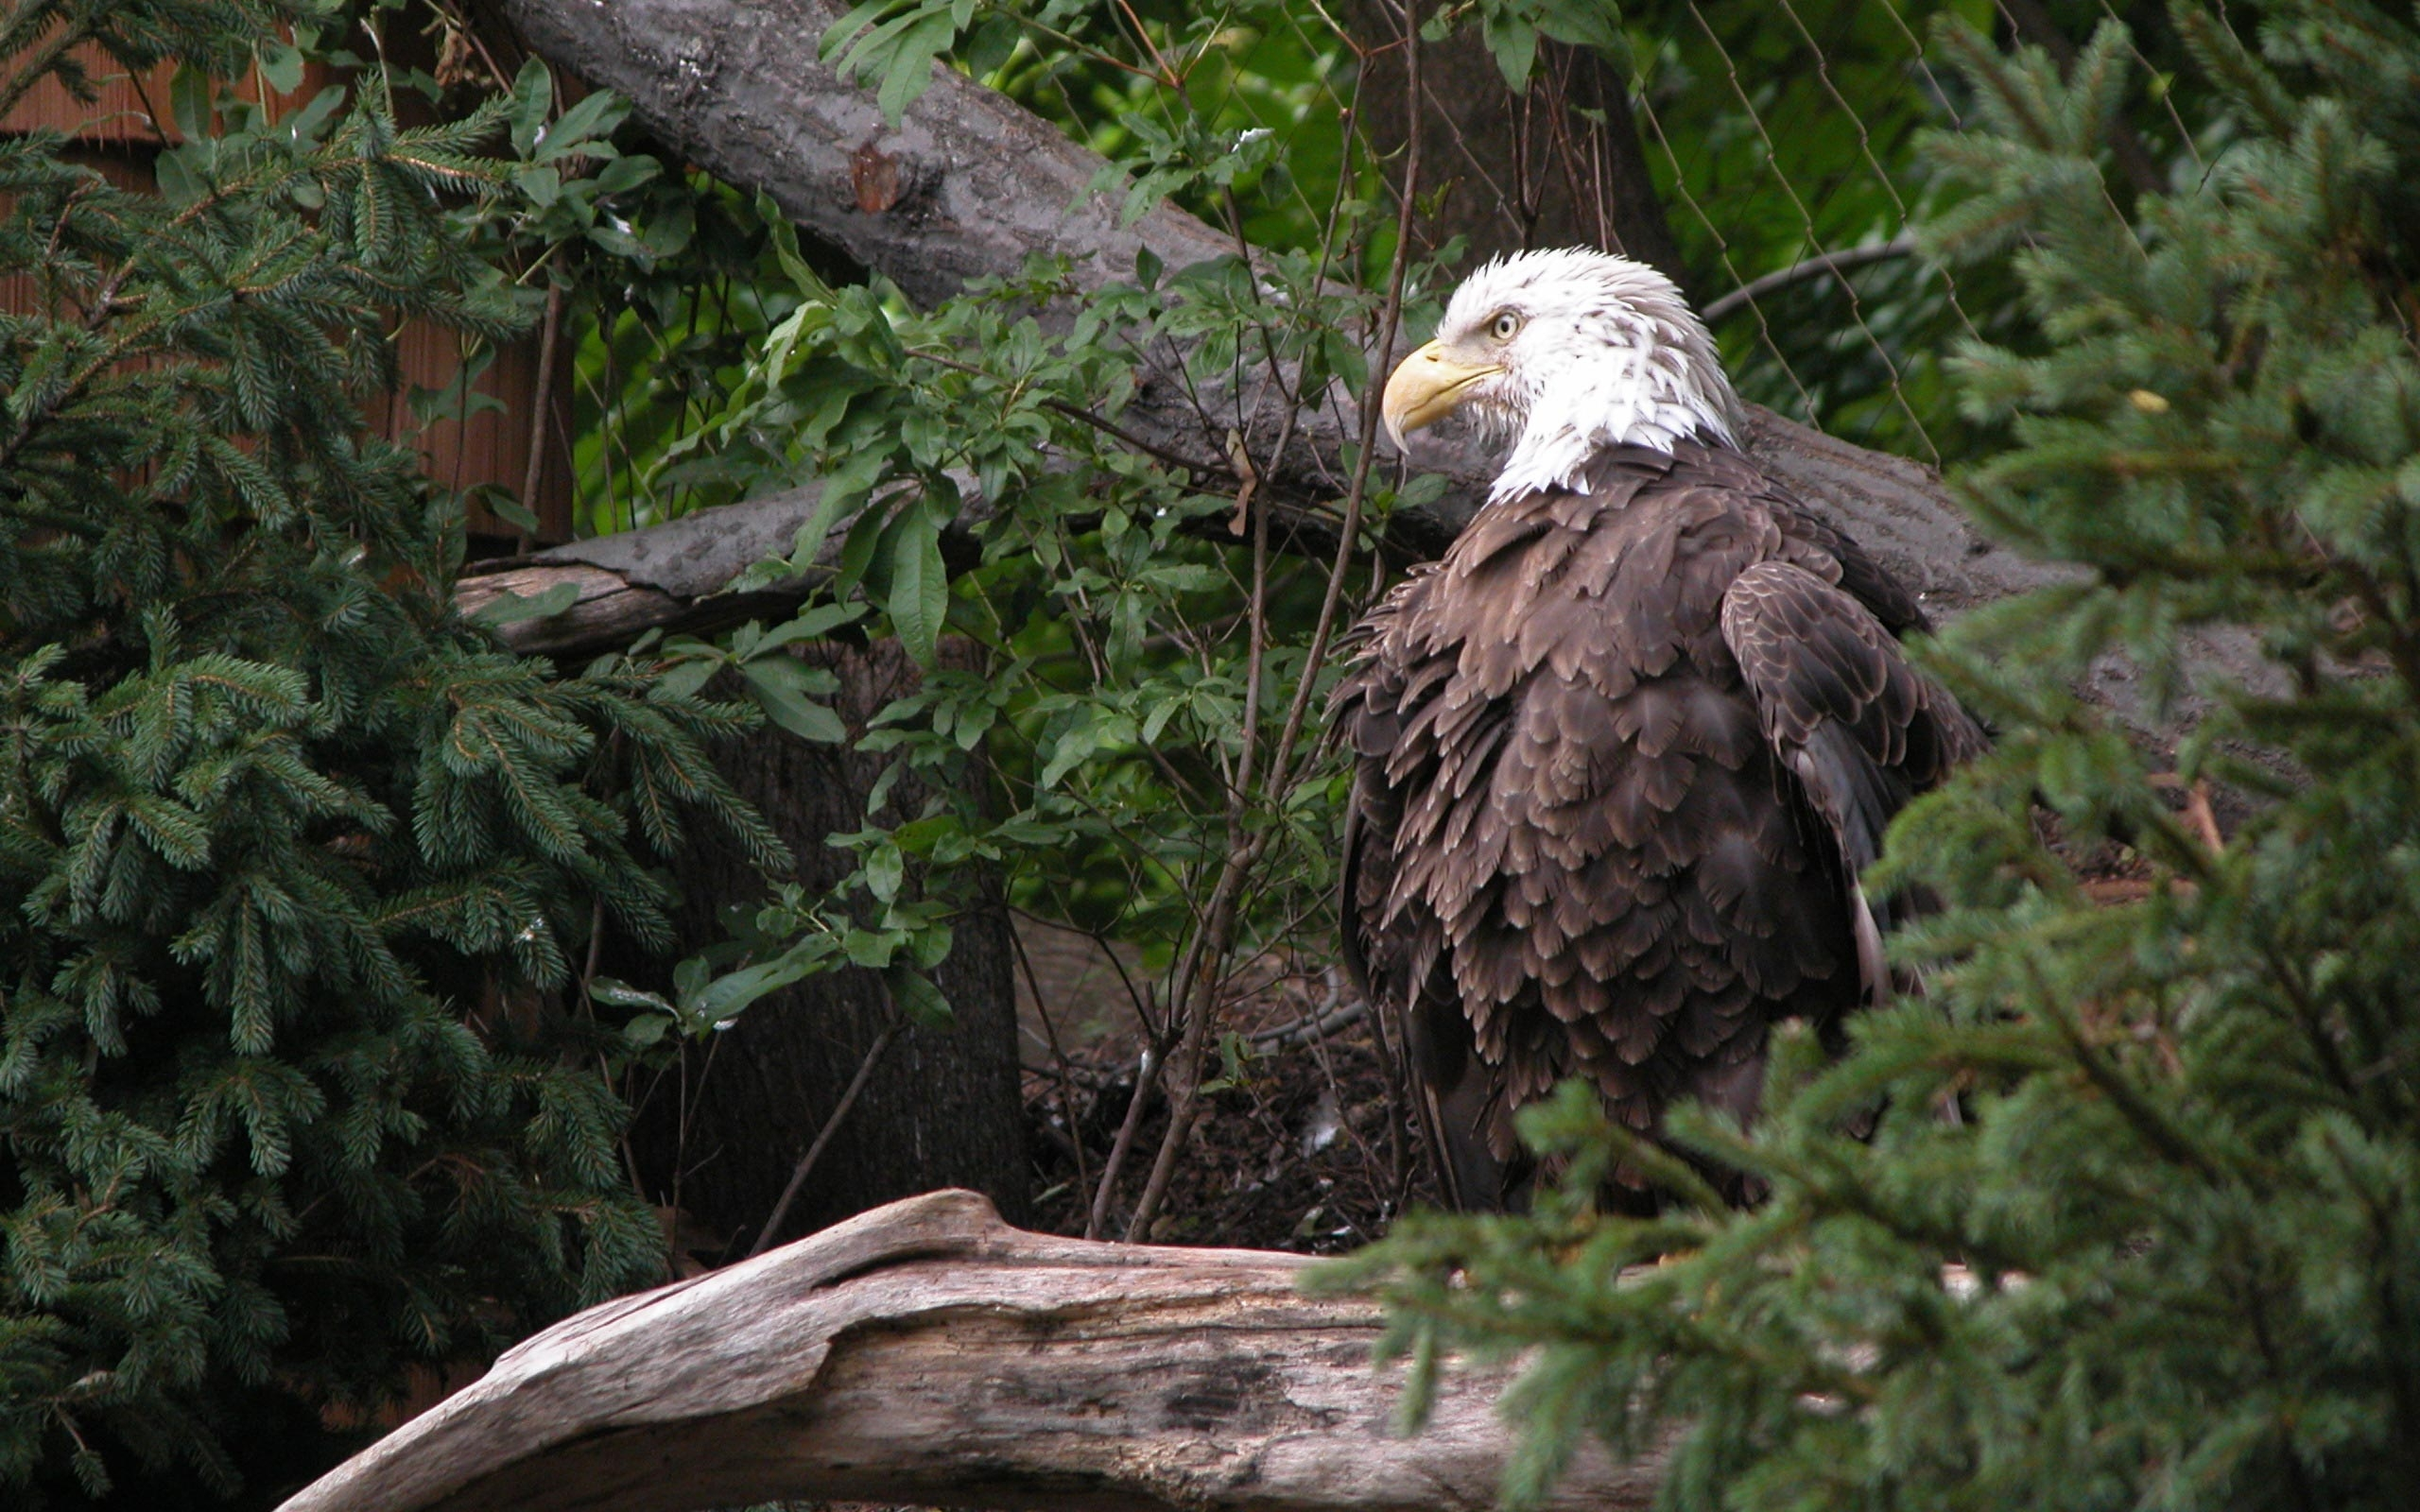 37165 download wallpaper Animals, Birds, Eagles screensavers and pictures for free